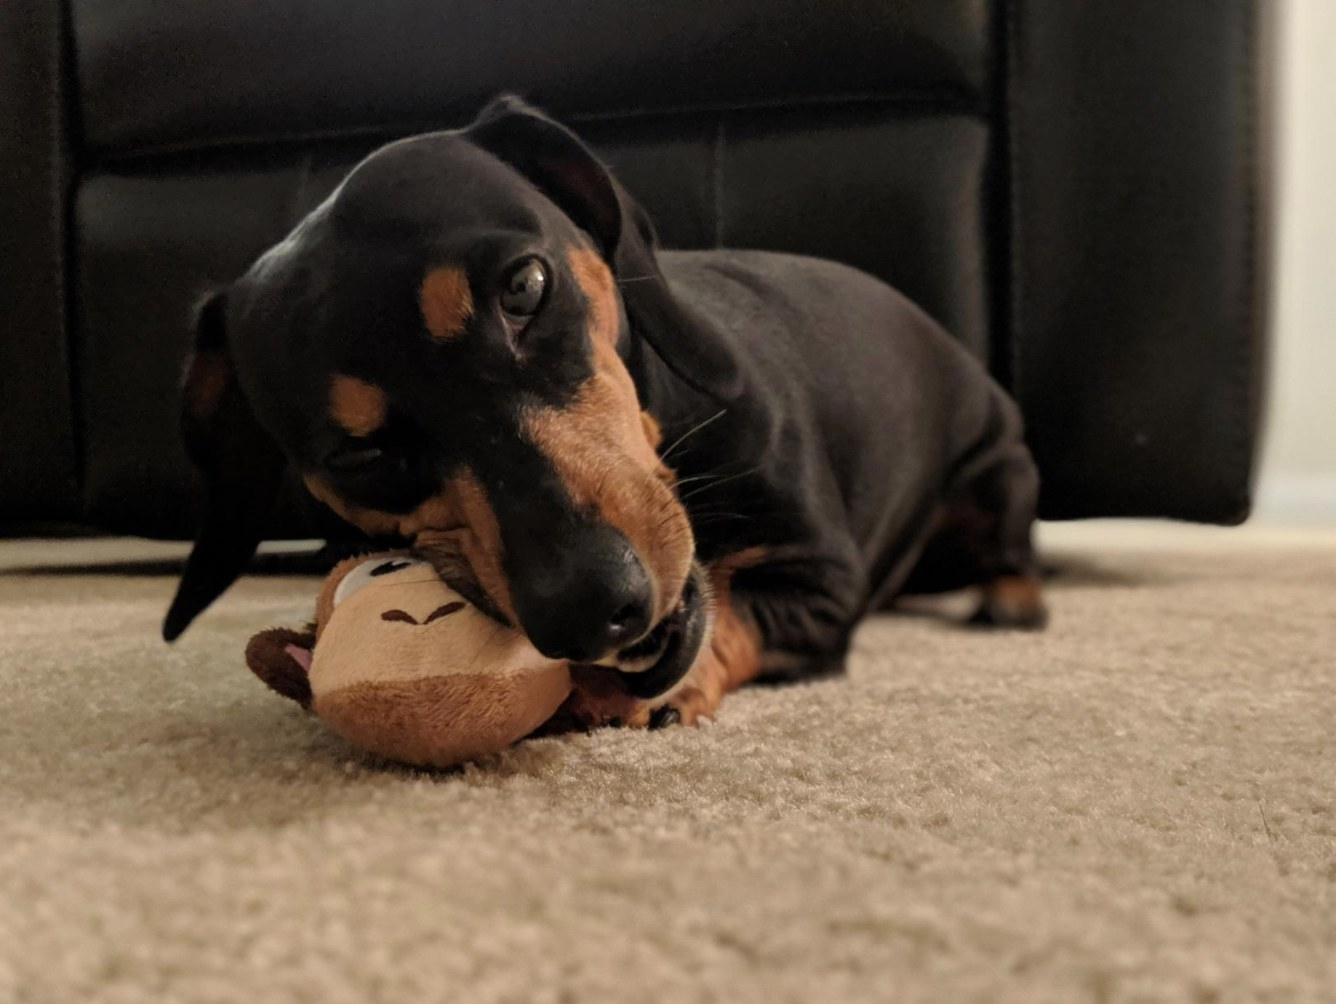 The reviewer's dog chewing on the small monkey squeaky toy